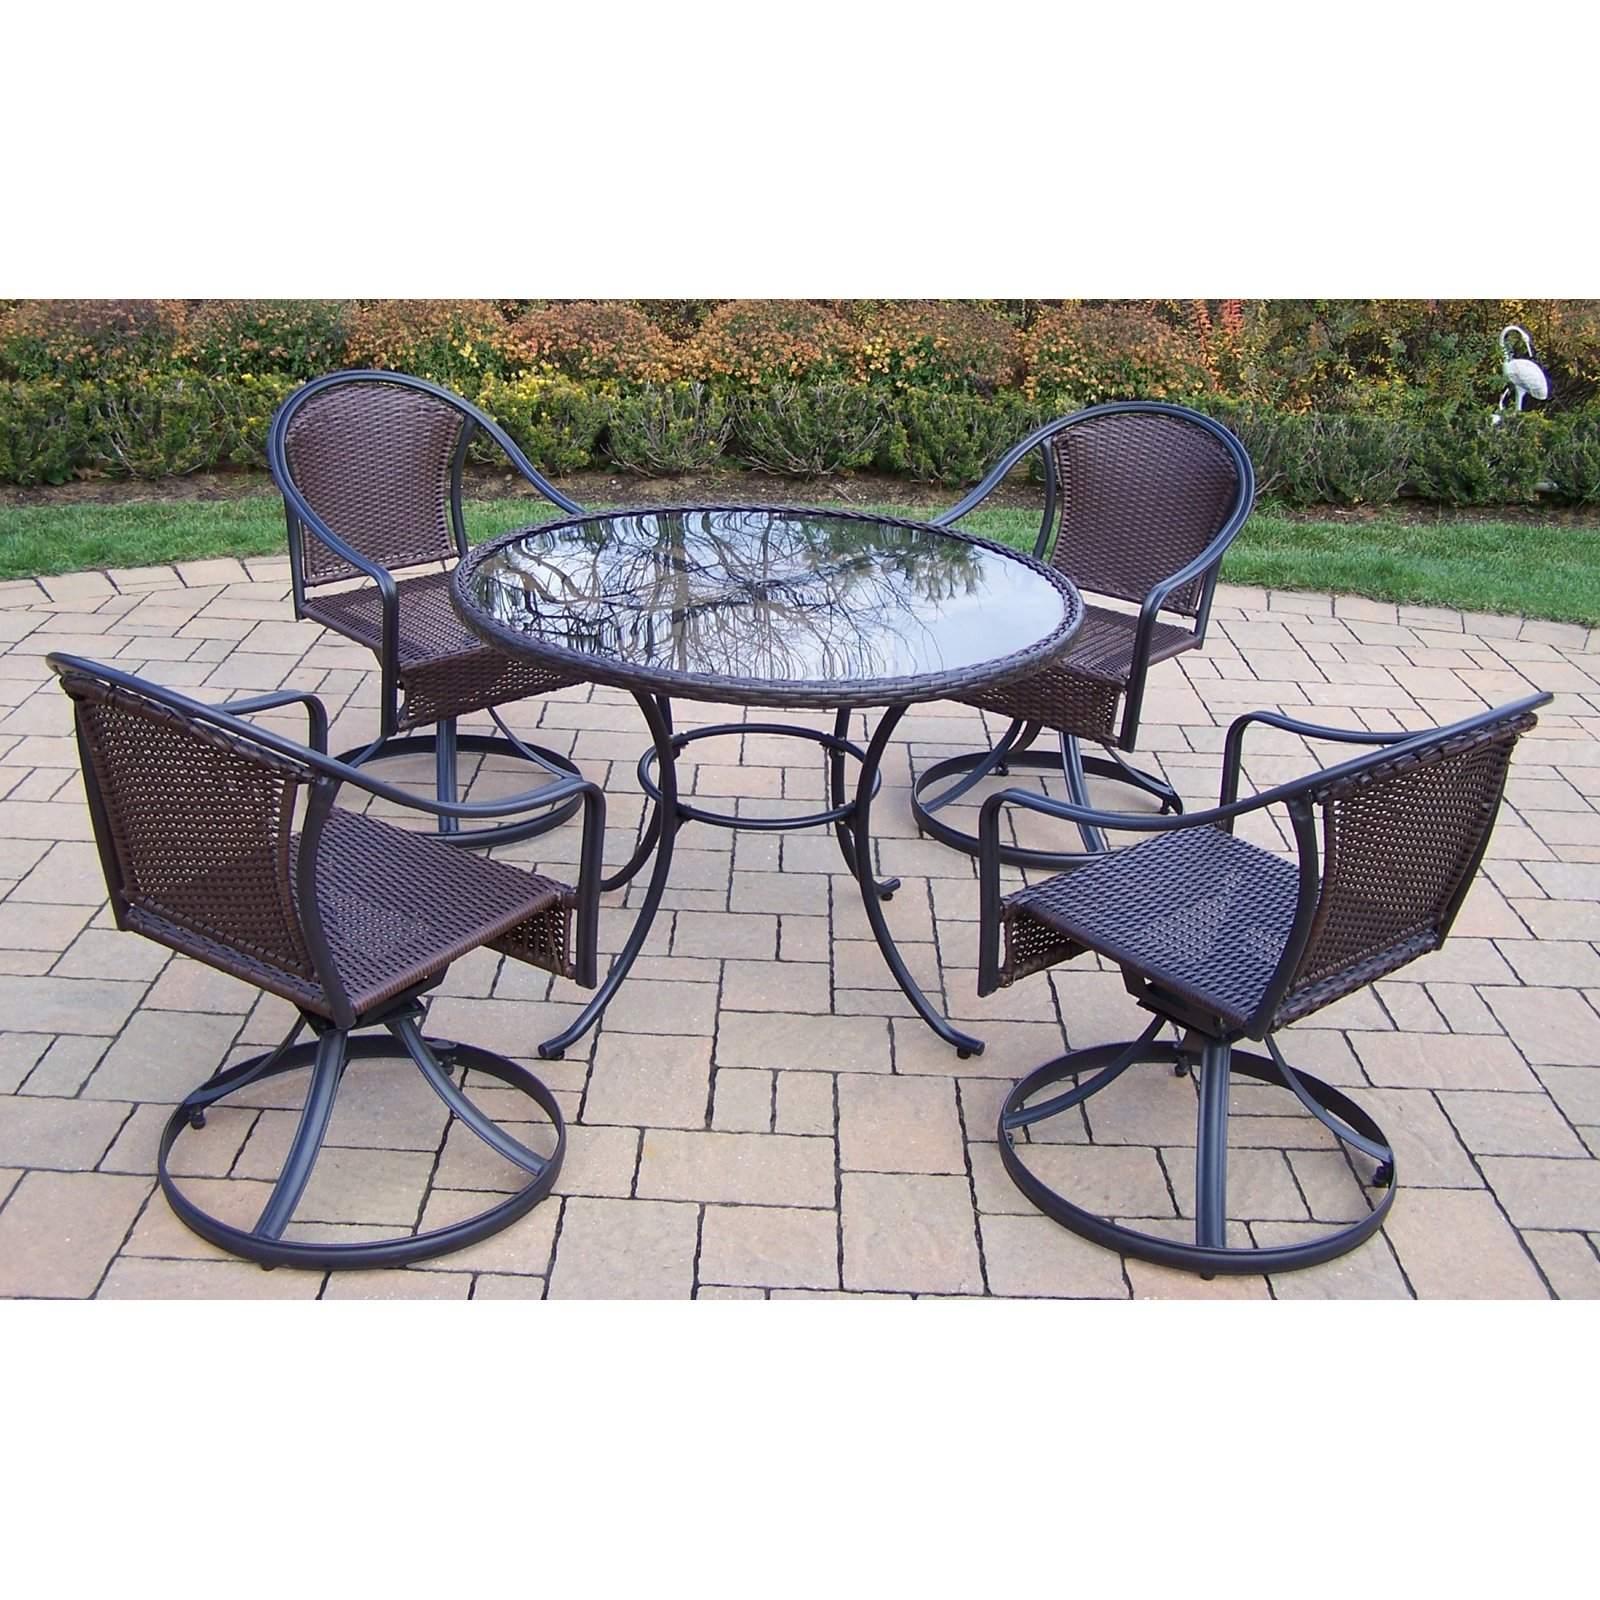 Oakland Living Elite Tuscany Resin Wicker Swivel Patio Dining Set